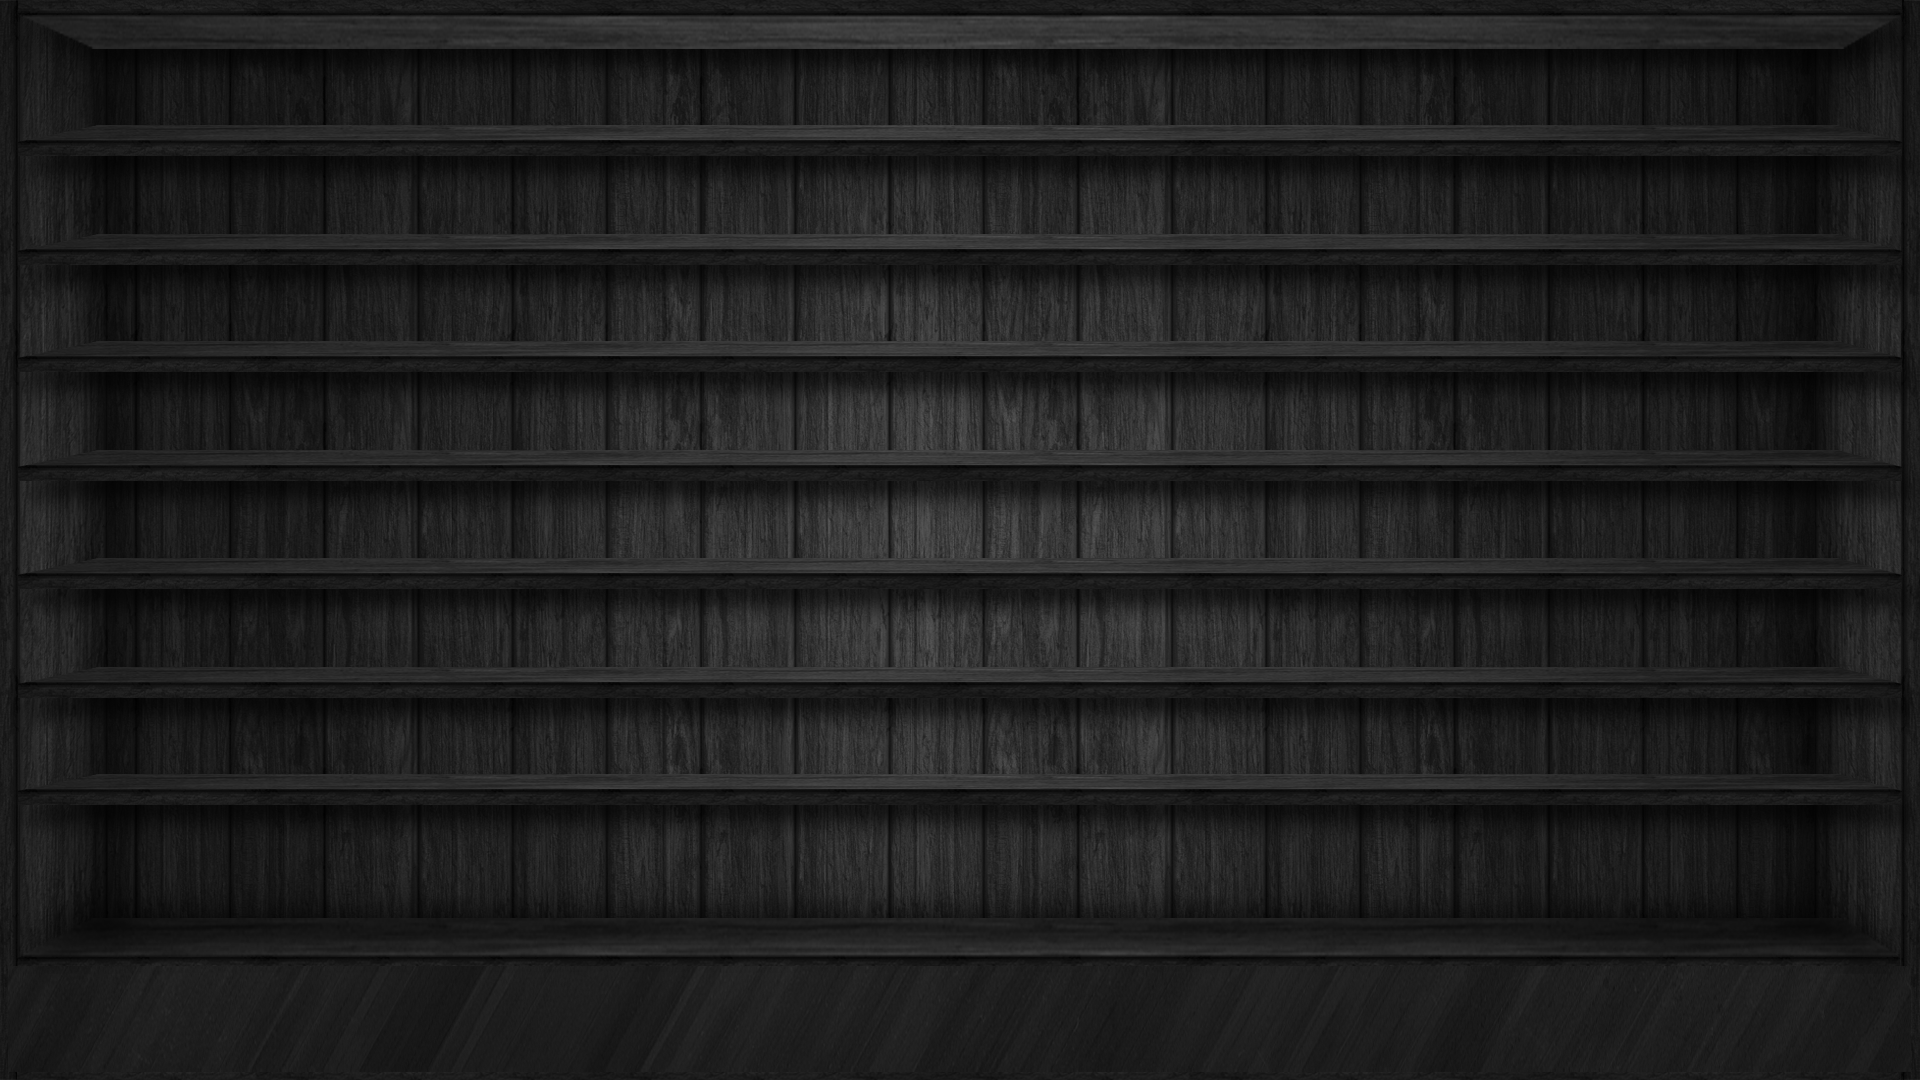 Shelves 1920x1080, Top on B.SCB Wallpapers